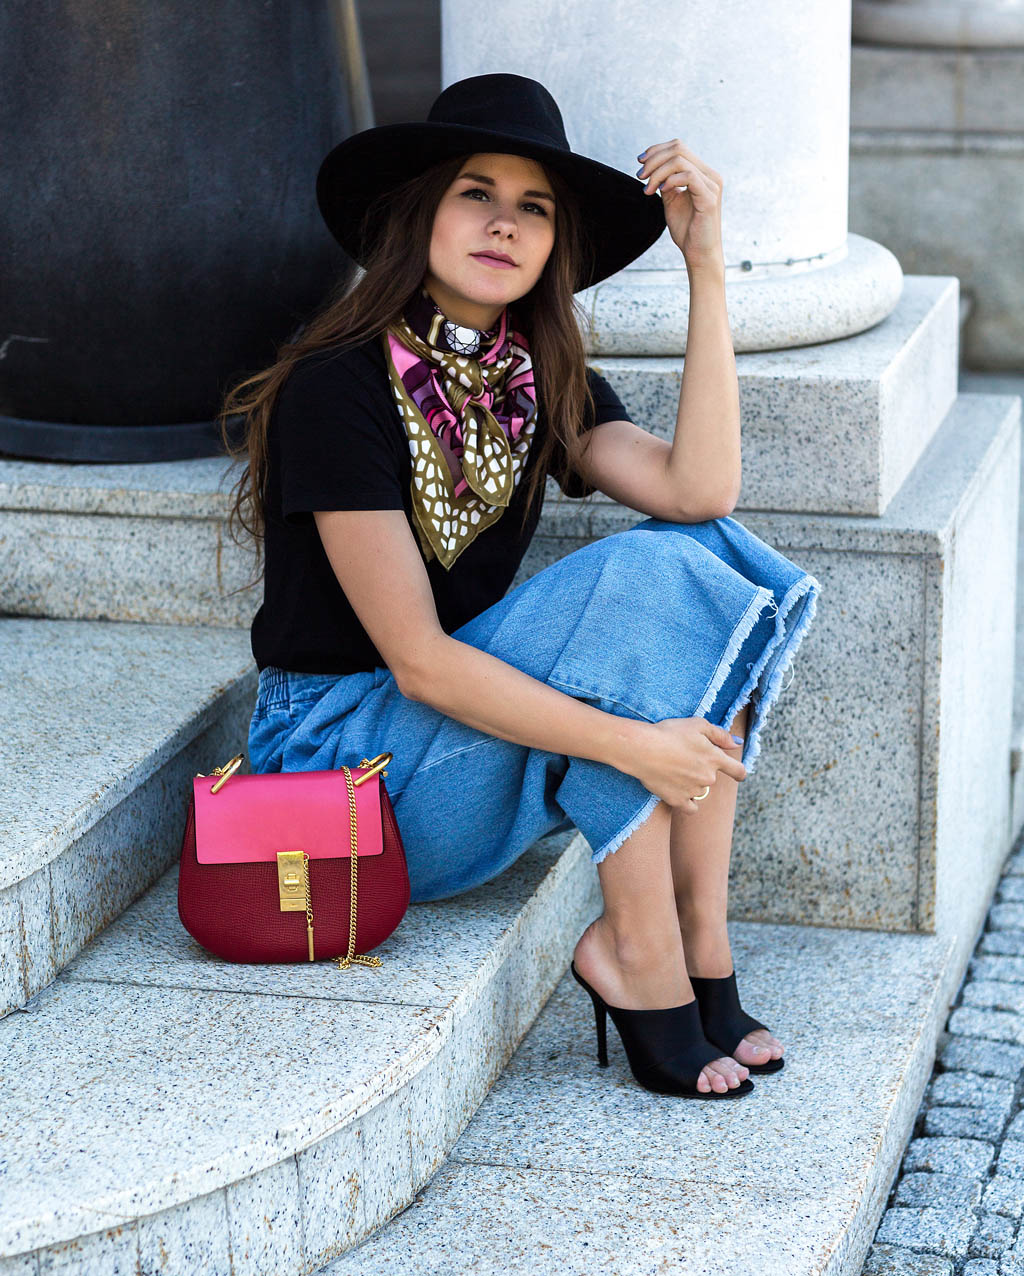 1.-chic-bag-and-silk-scarf-with-eclectic-outfit